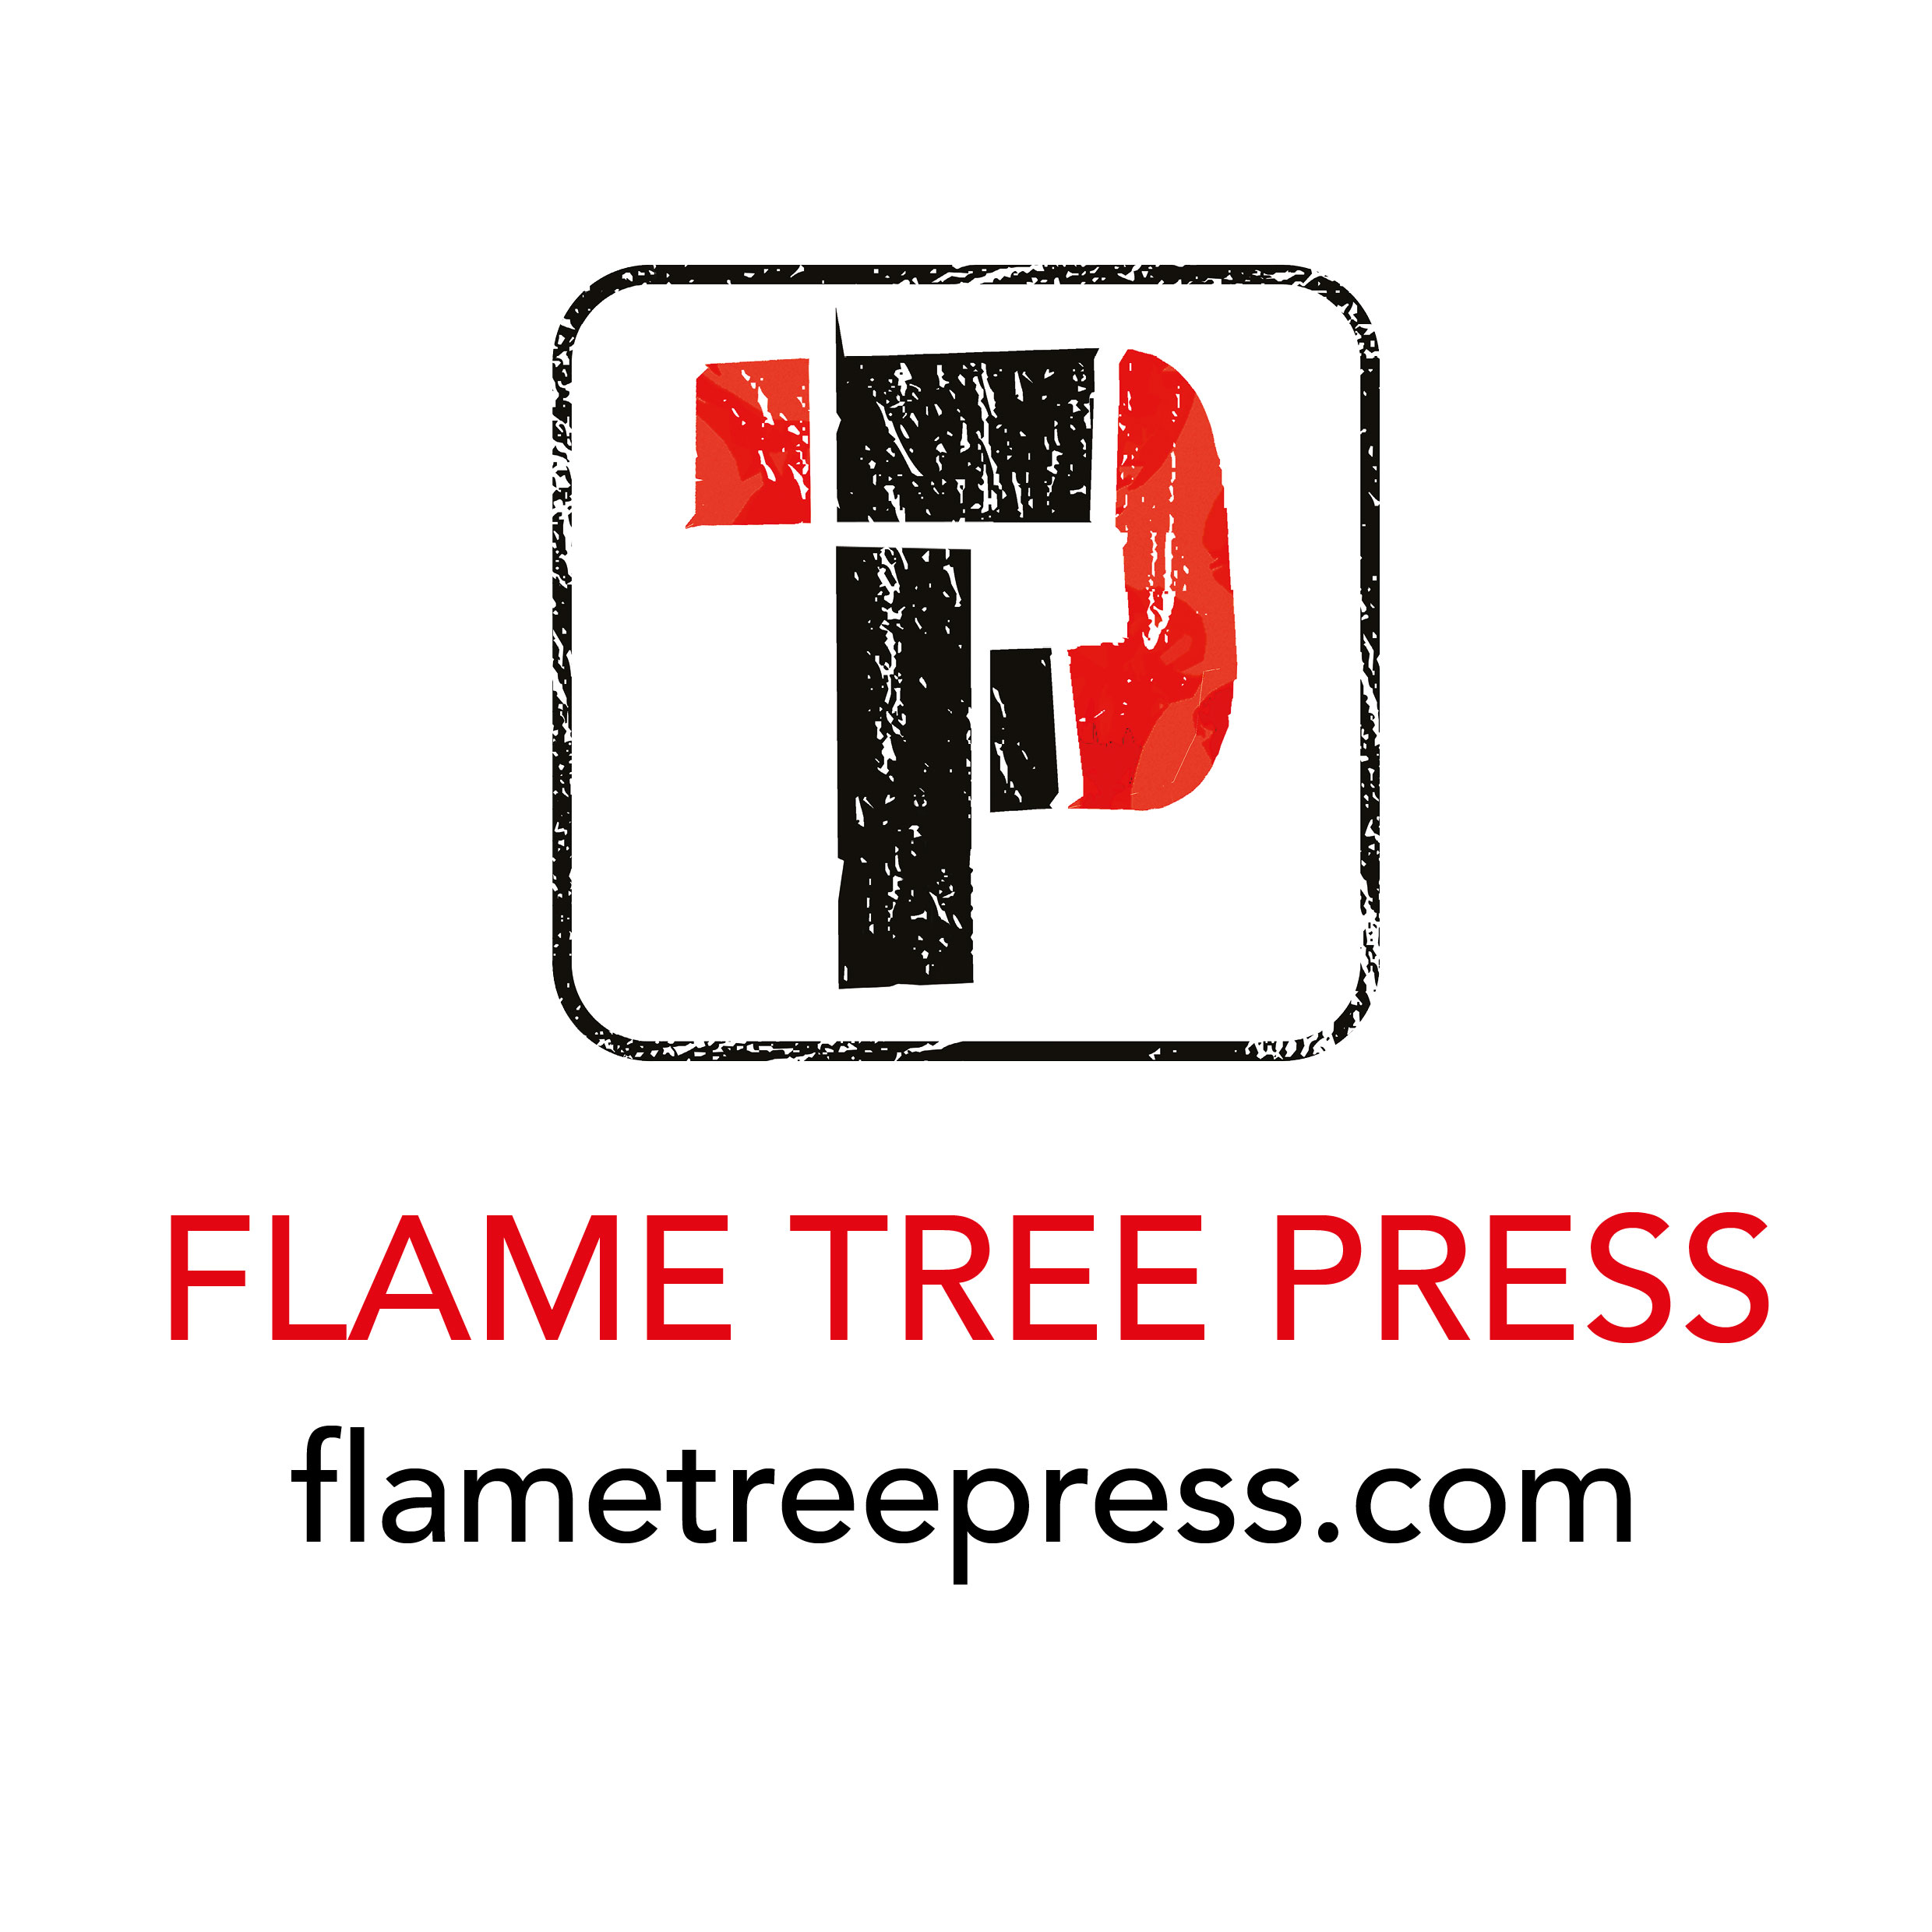 Flame Tree Press